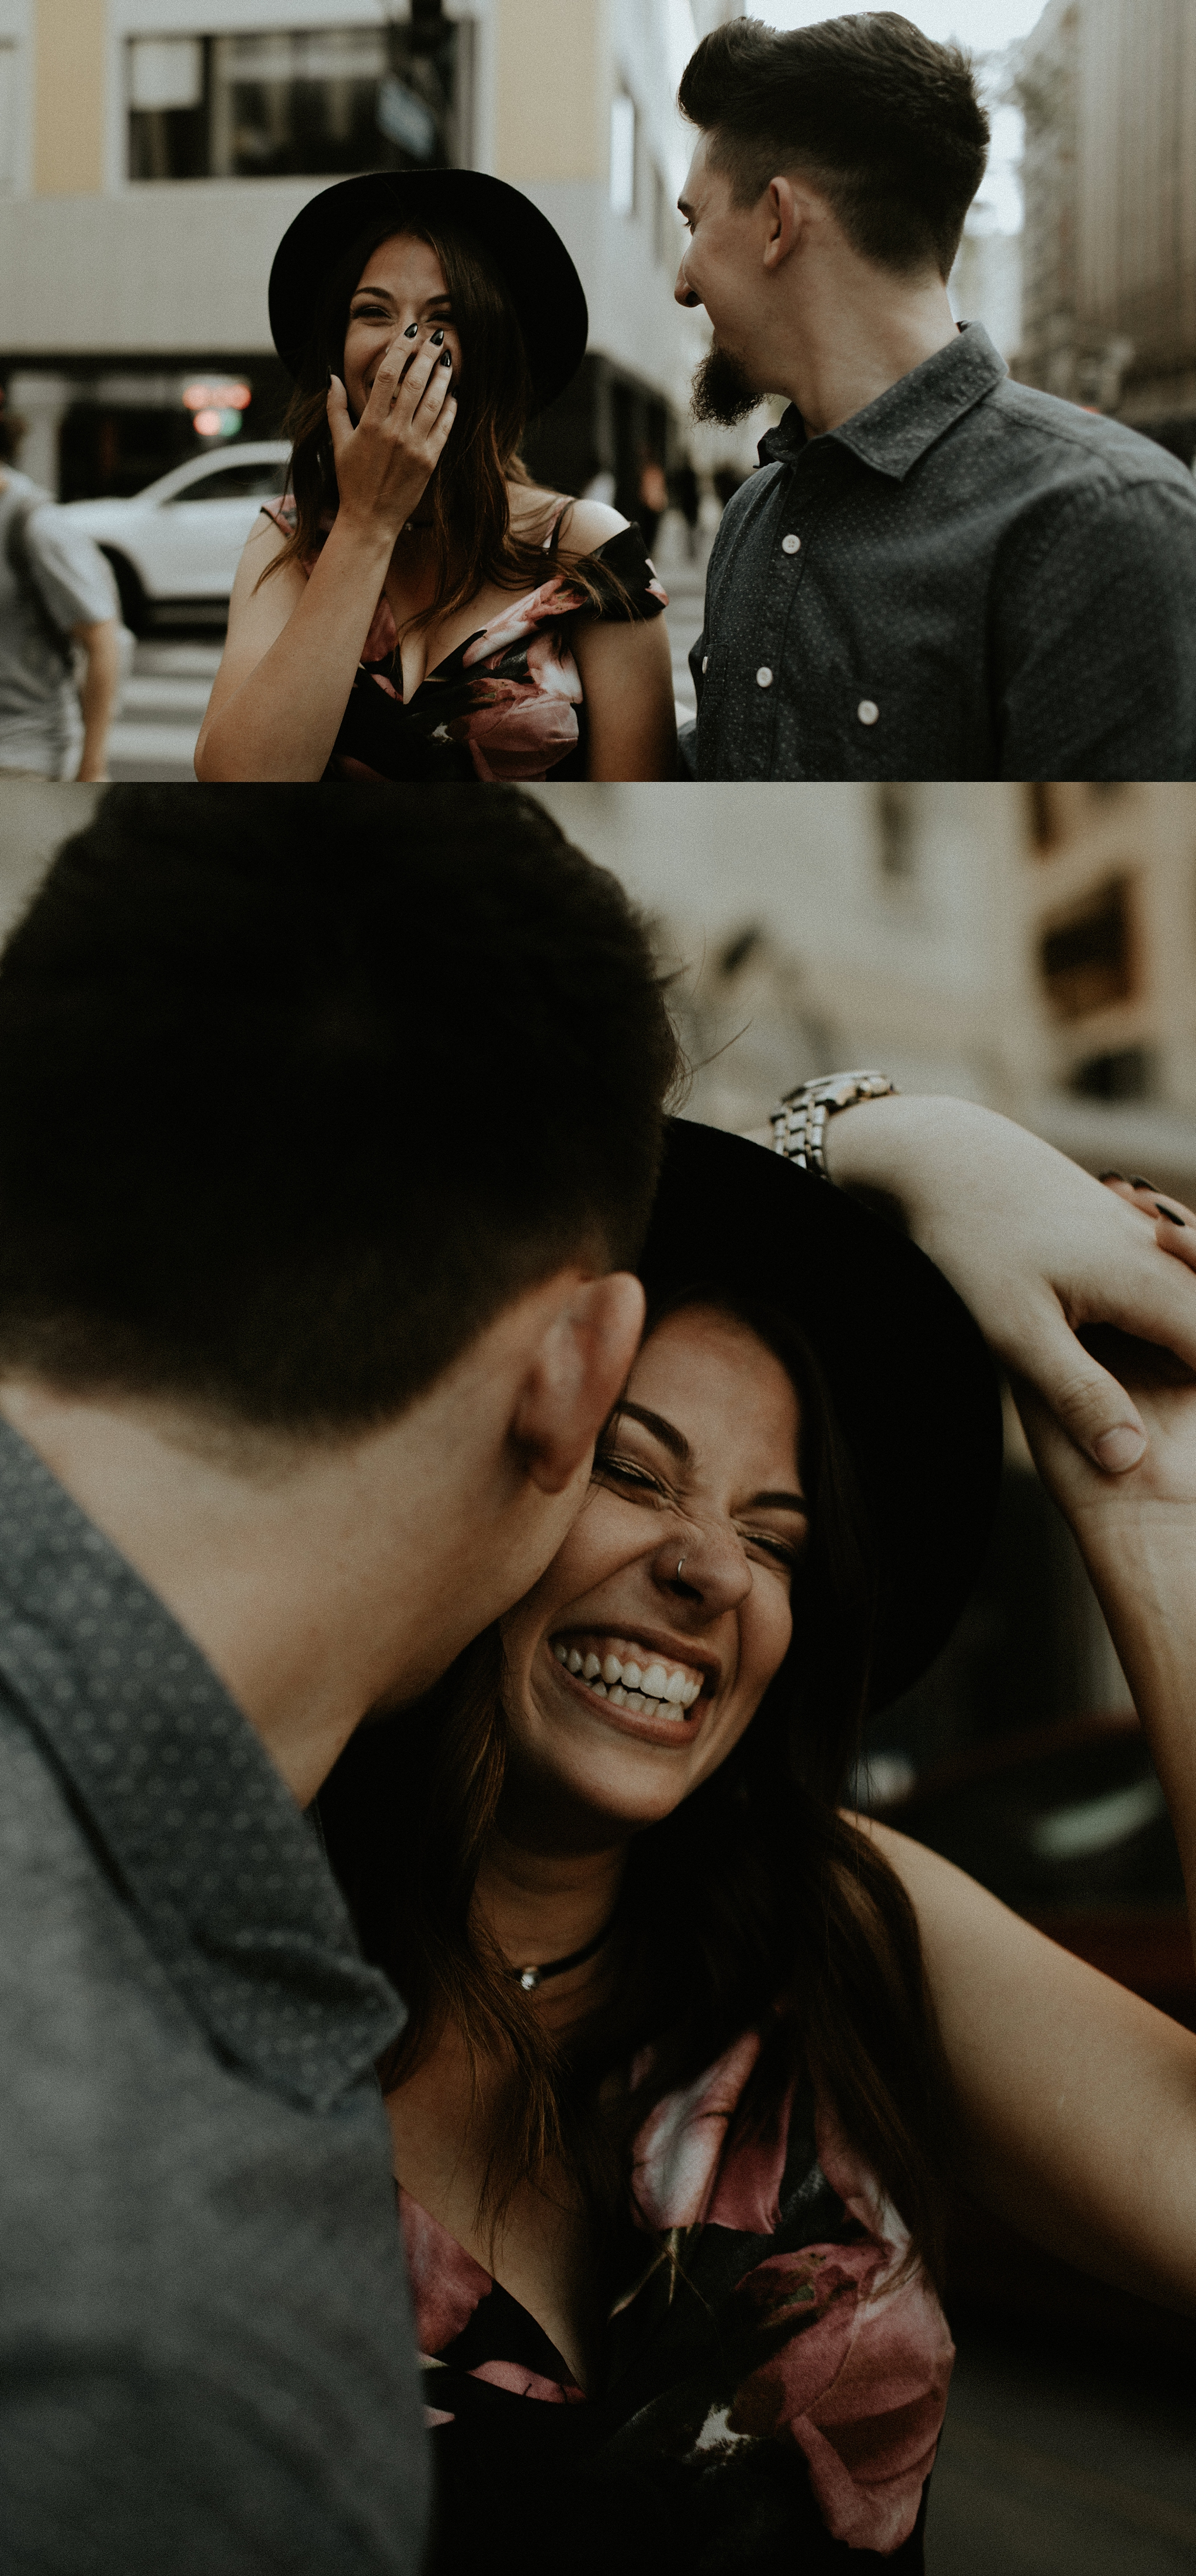 trinjensen photography, DTLA Engagement Session in Los Angeles, Southern California_0001.jpg